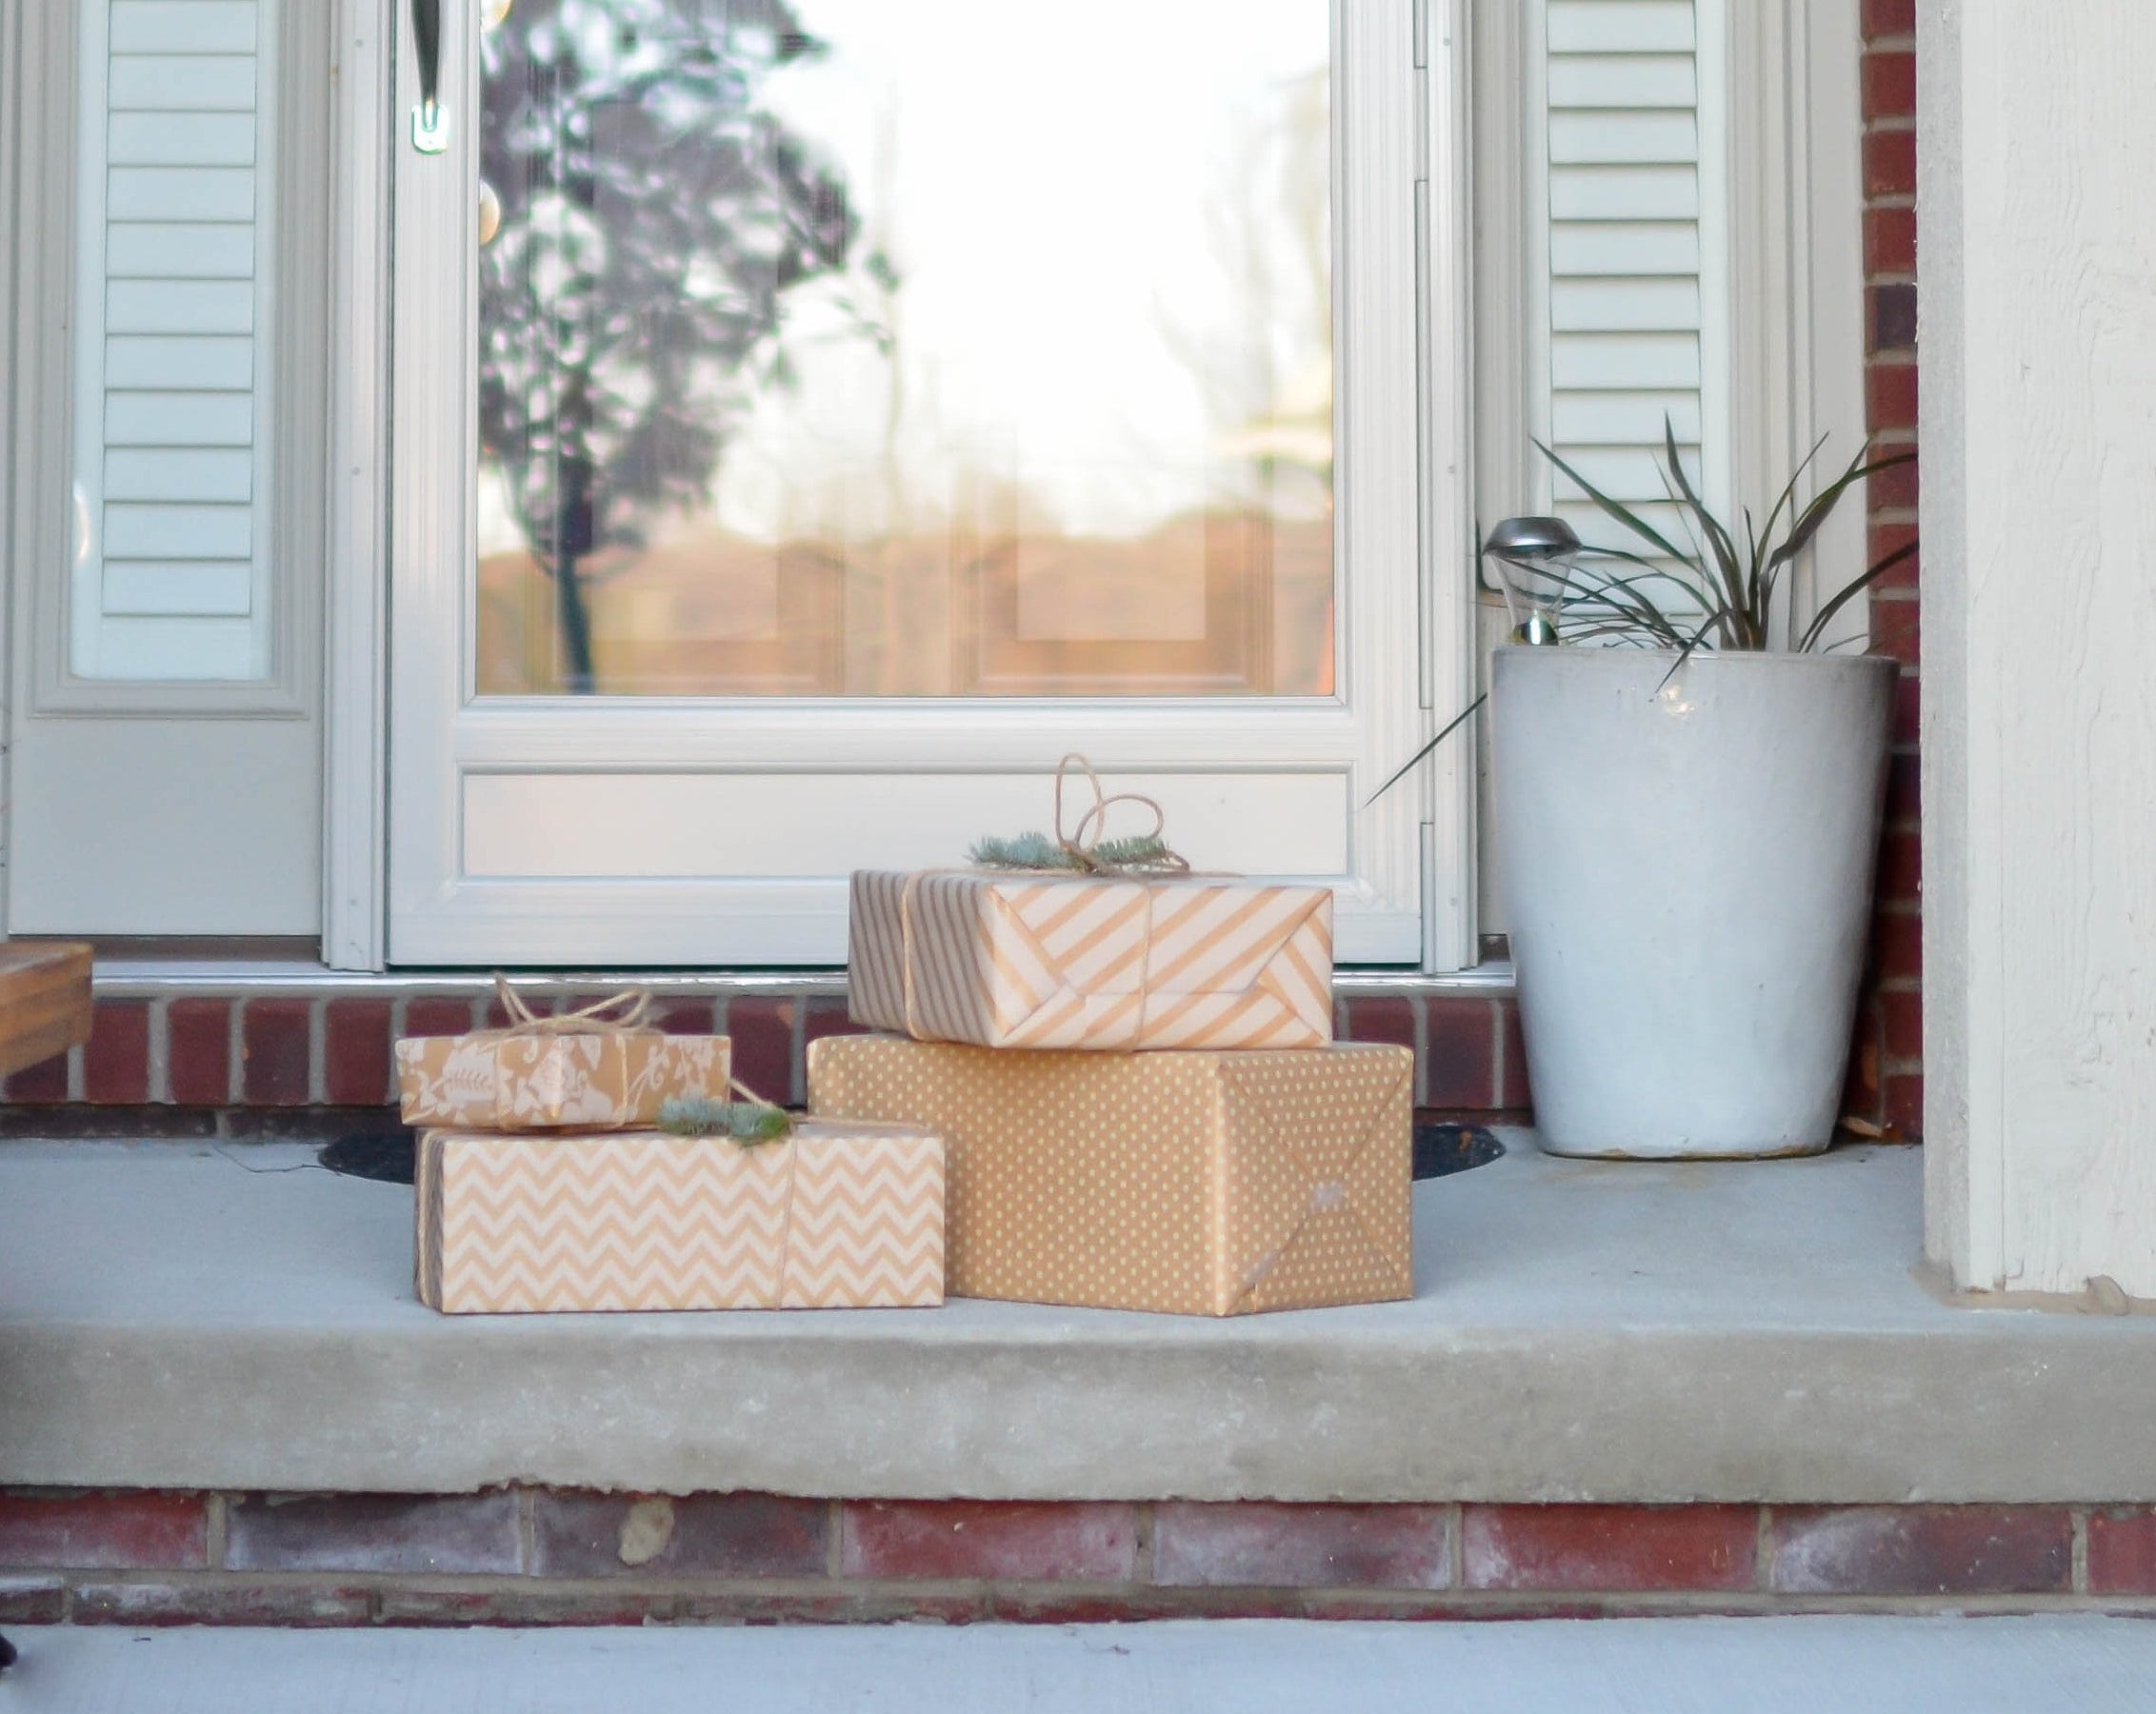 What to do if Your Package is Stolen?